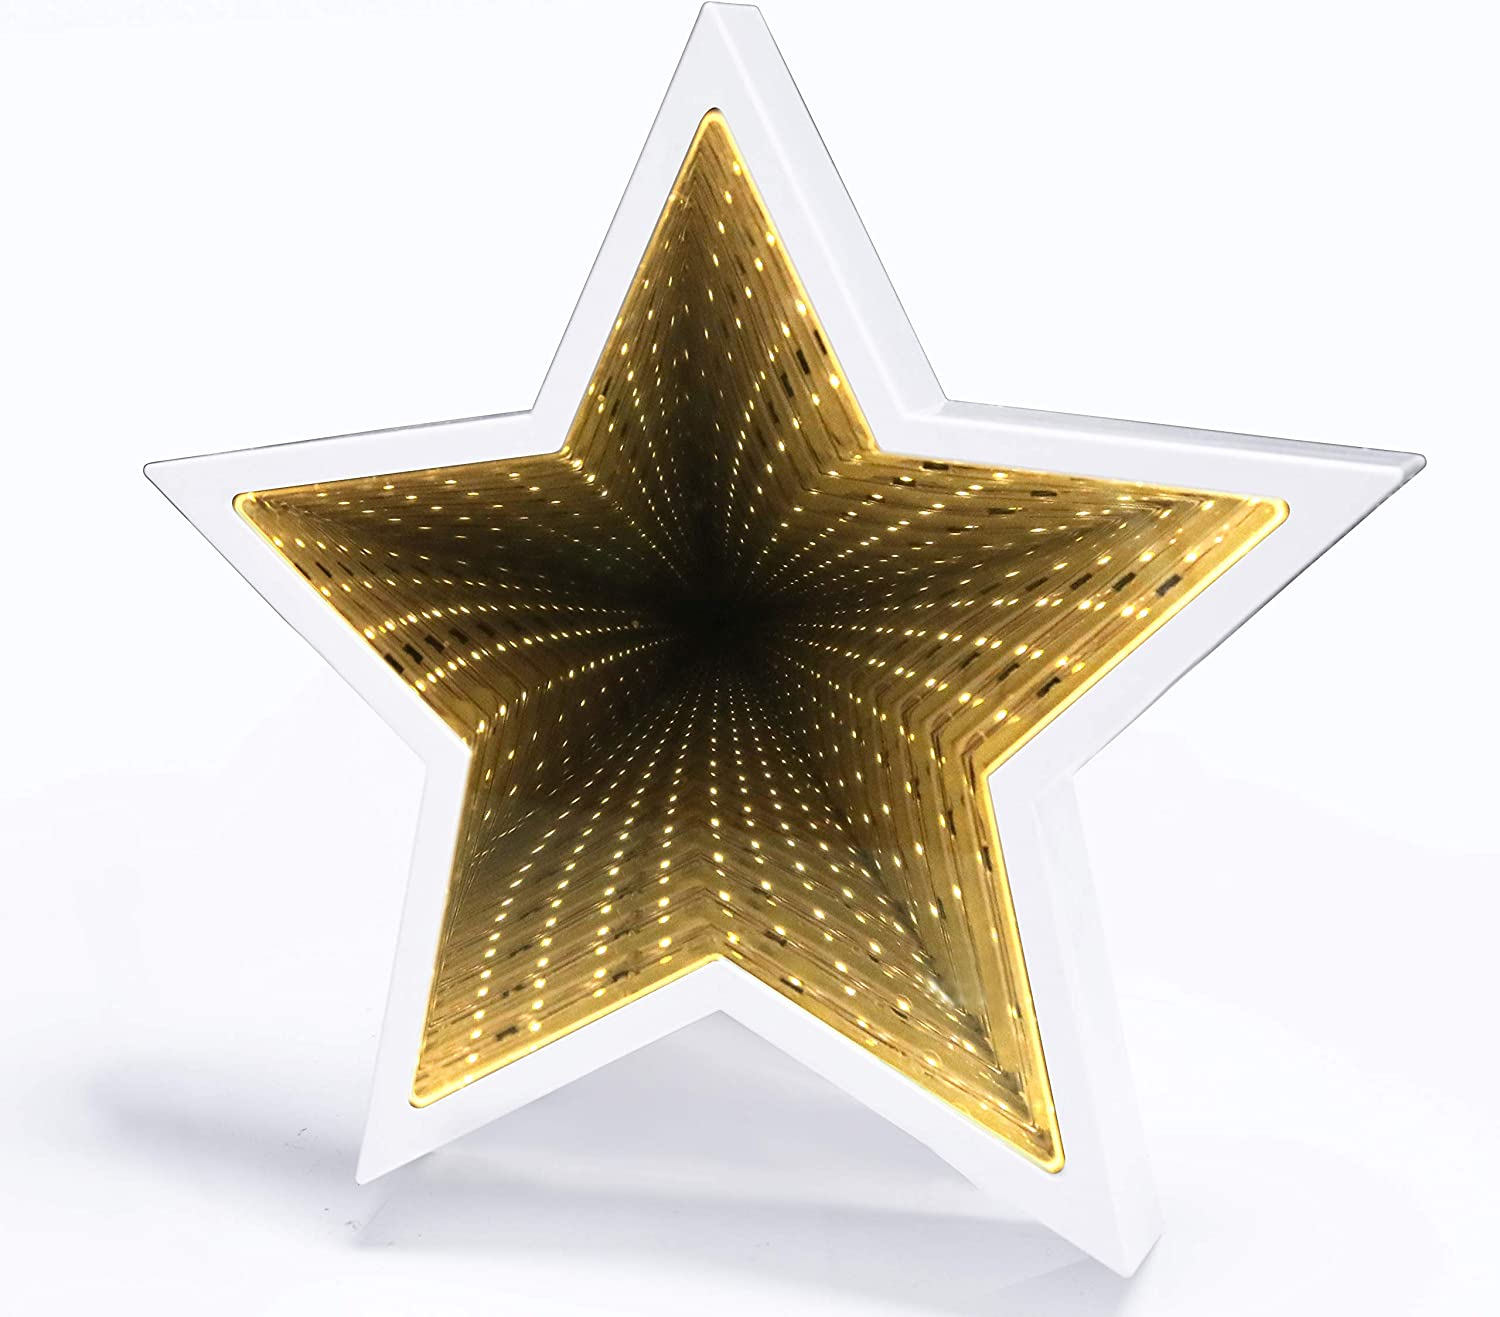 SUNTRA LED Infinity Tunnel Lamp 3D Star Shaped Plastic Sign-Lighted Marquee Night Light Wall Decoration for Kids' Room, Bedroom, Christmas, Birthday Wedding Party Decor Battery Operated (White)